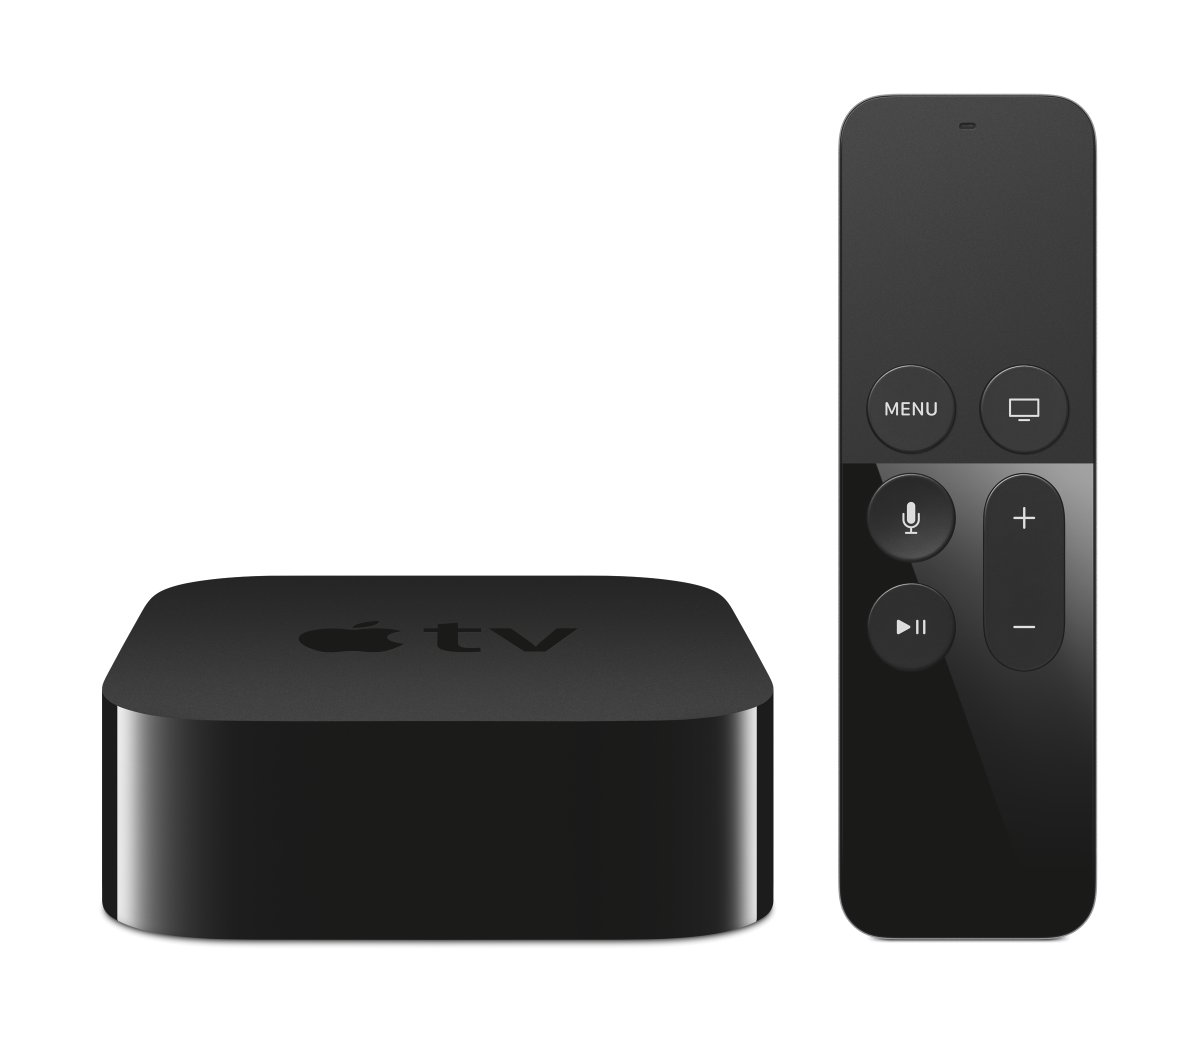 AppleTV 4th generation